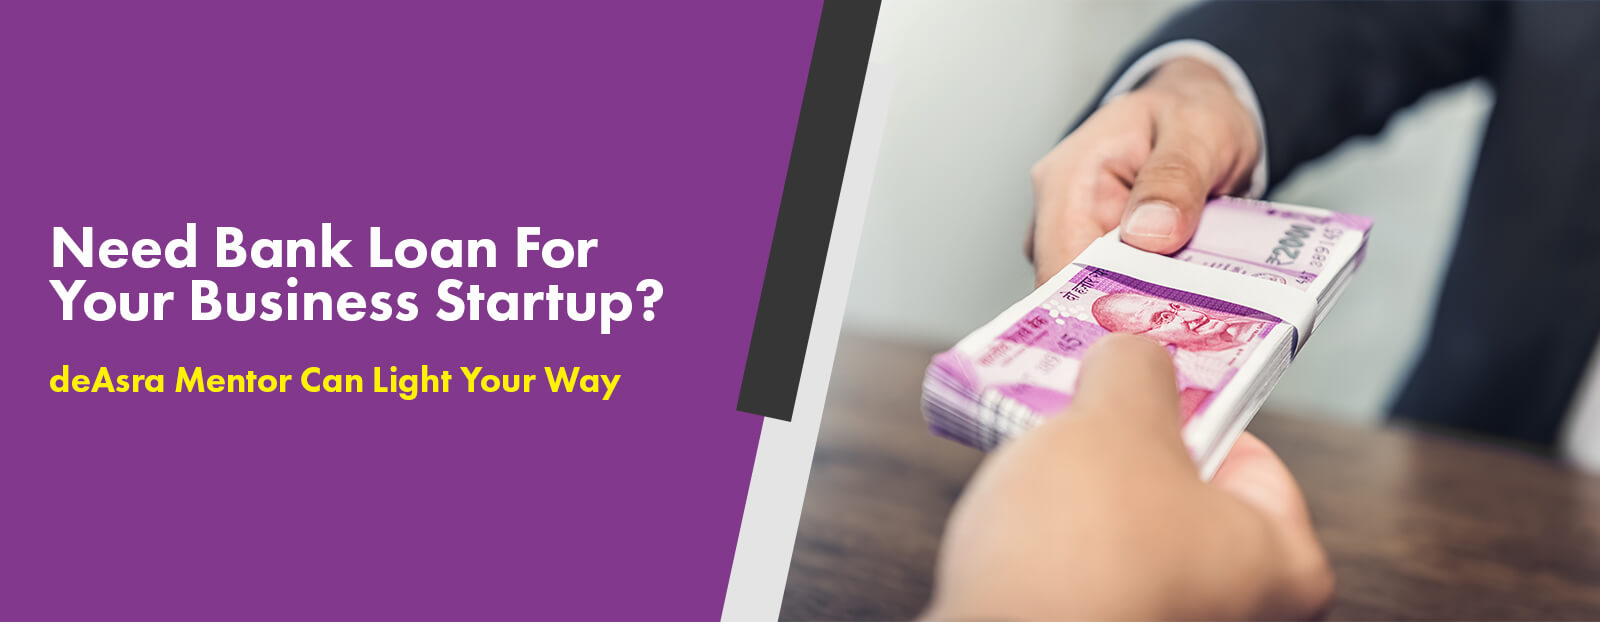 Need Bank Loan For Your Business Startup? deAsra Mentor Can Light Your Way